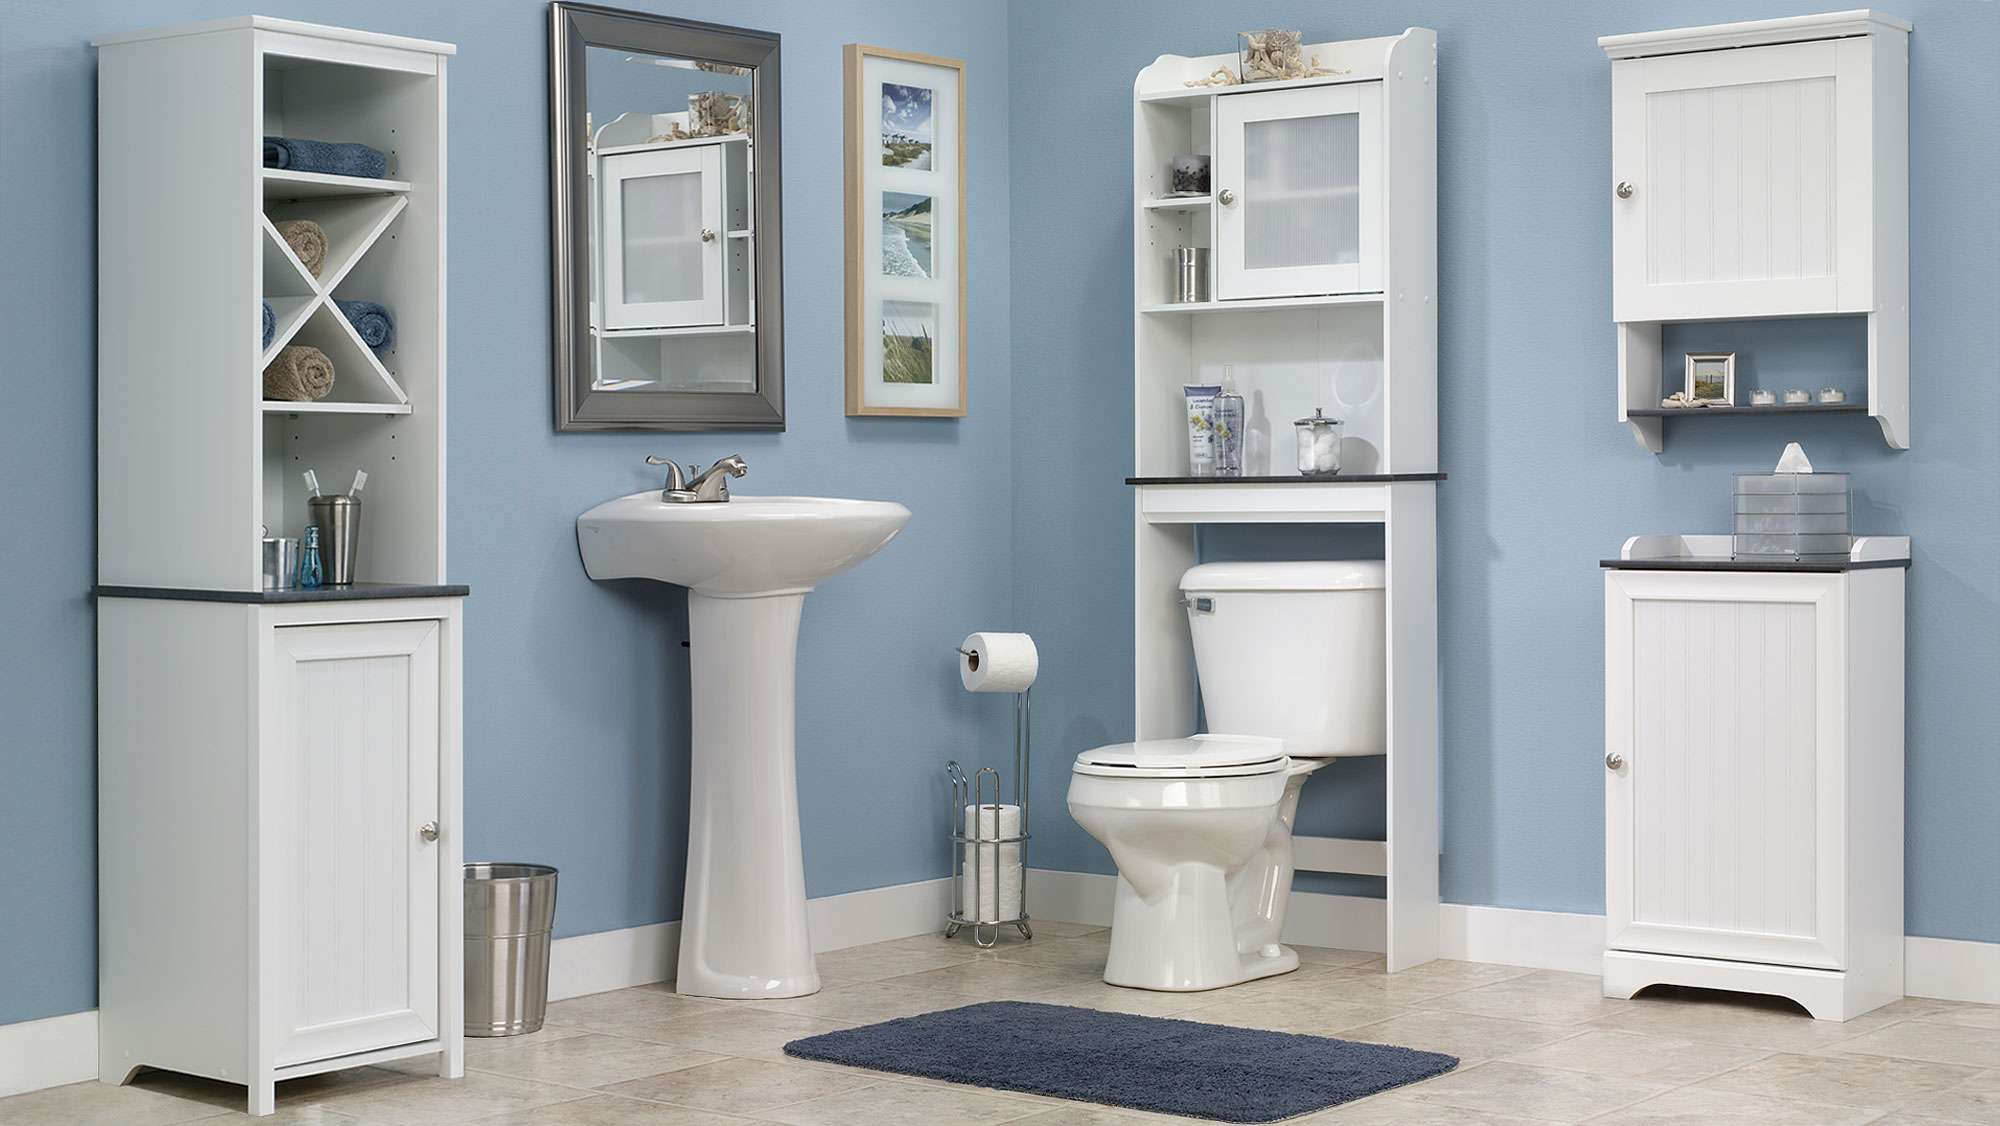 Furniture Cabinets Bathroom Storages Wood